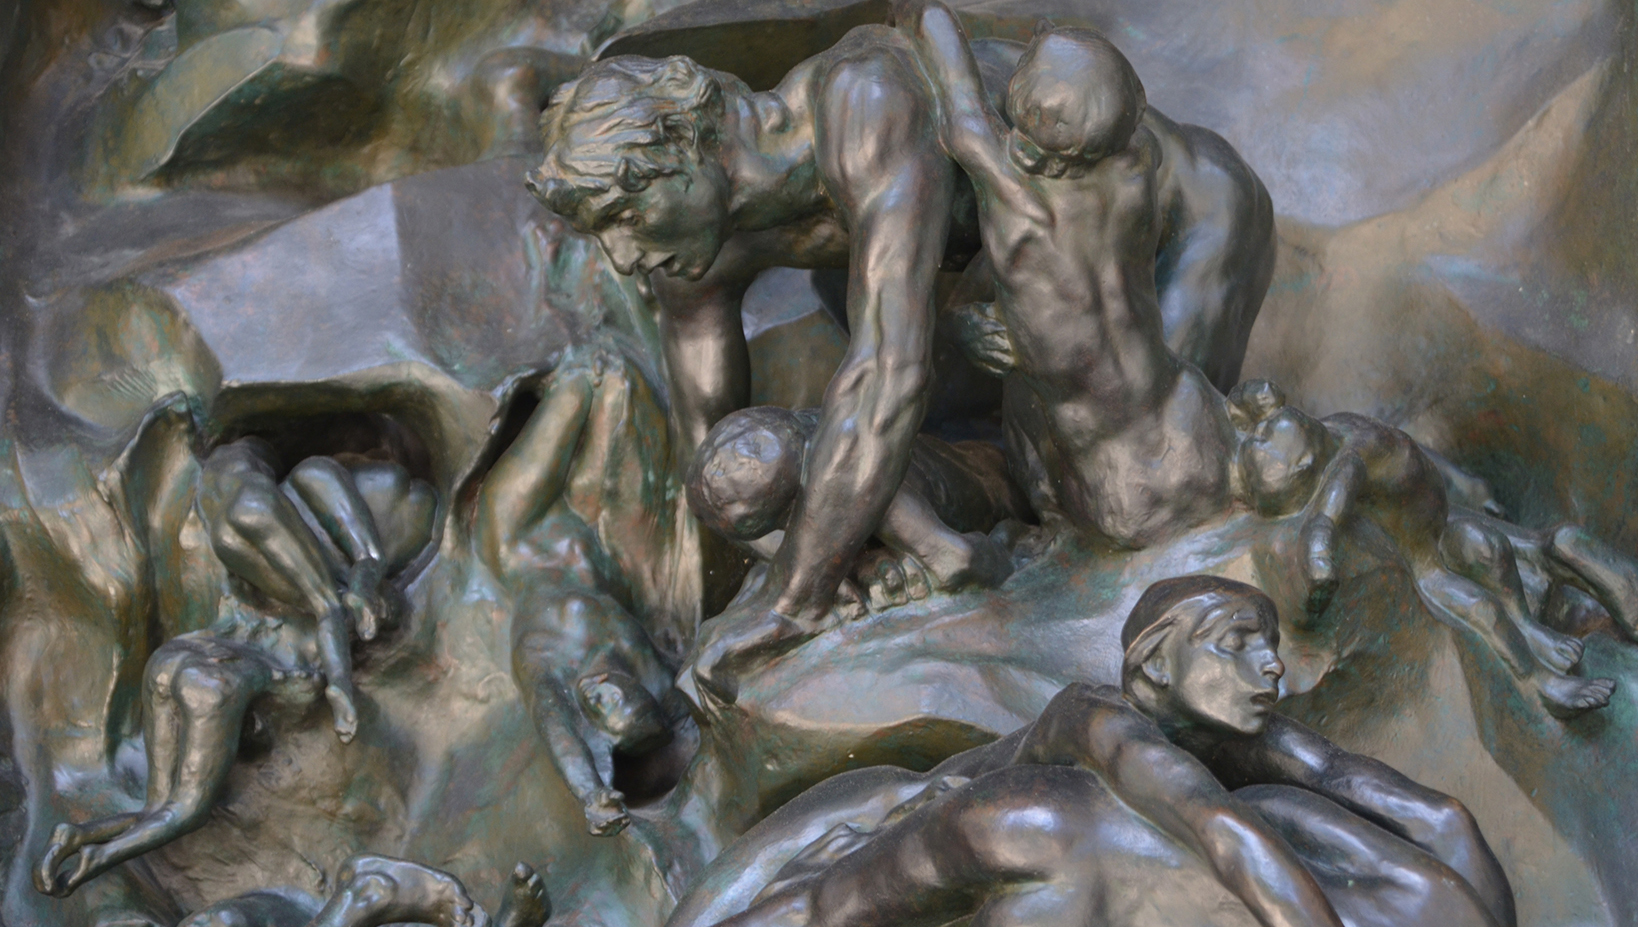 Detail of Rodin's Gates of Hell